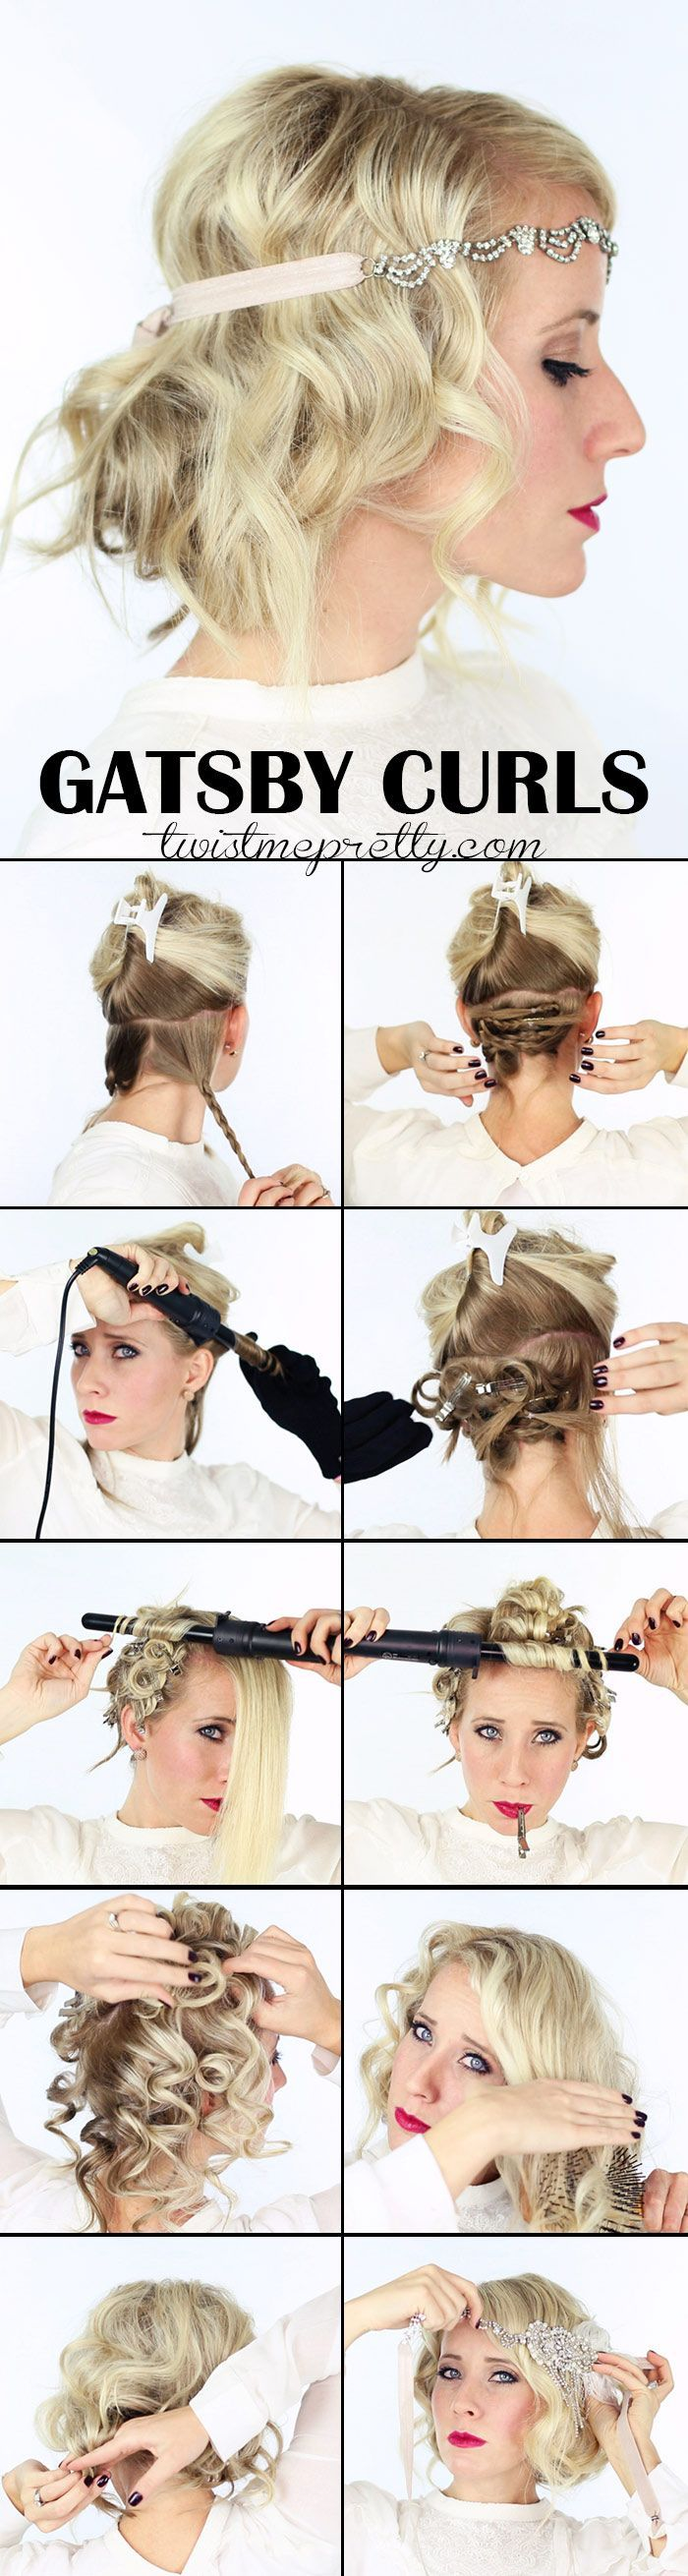 The perfect Gatsby Curls for your 1920 flapper girl costume! Come checkout the vintage updo and watch the easy to follow video tutorial!